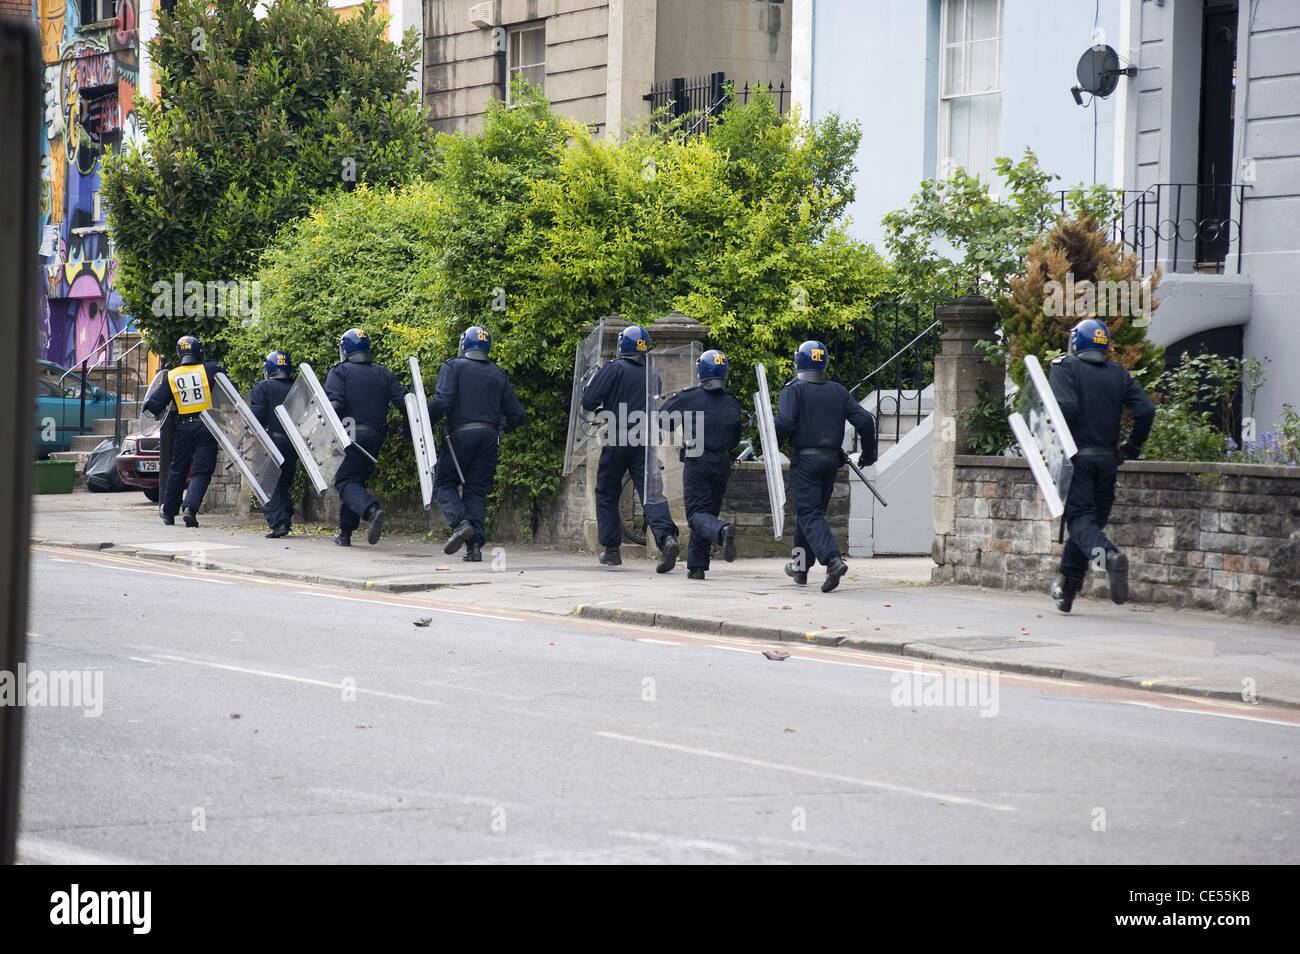 Riot Police charging a squat during a disturbance on Stokes Croft, Bristol, UK - EDITORIAL USE ONLY - Stock Image